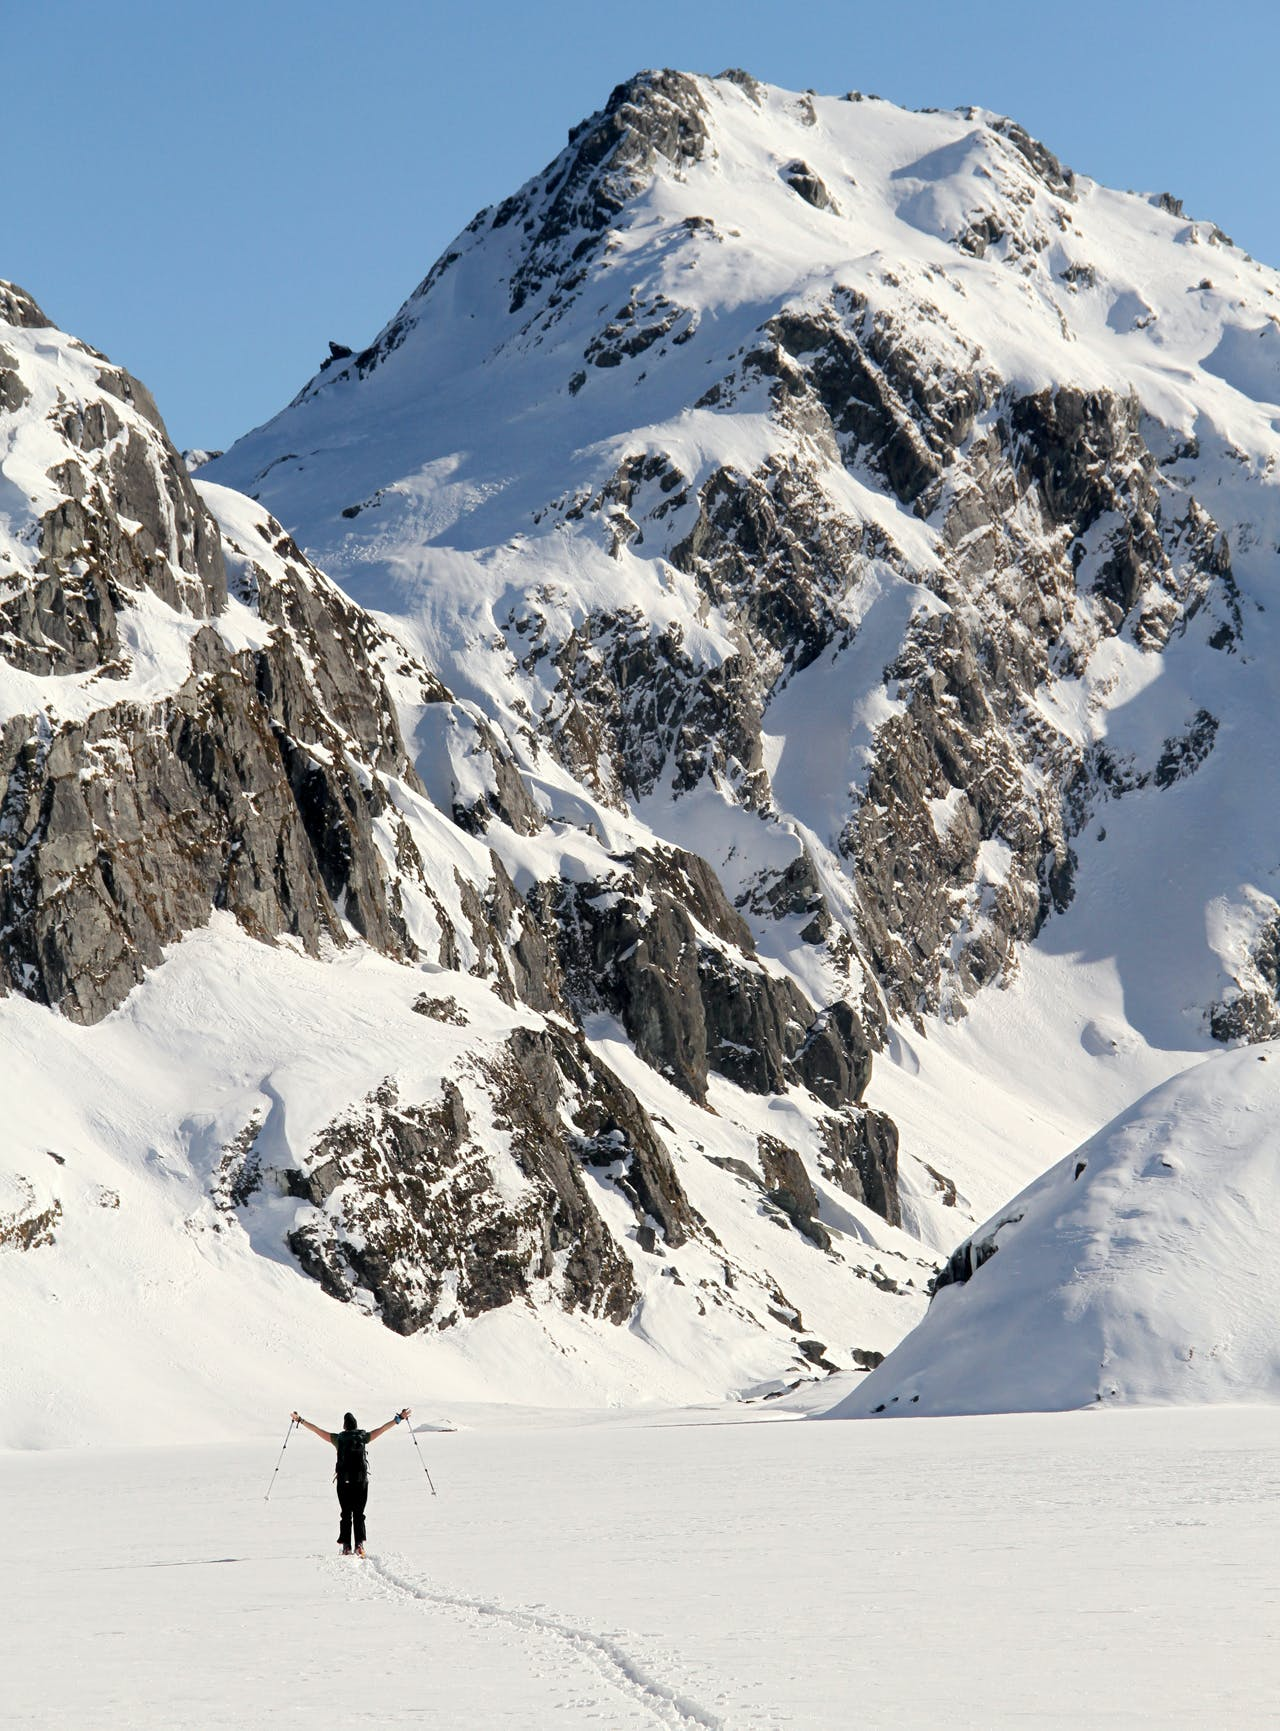 Winter on the Routeburn provides plenty of skiing opportunities and unwinding in the cosy - and empty - huts